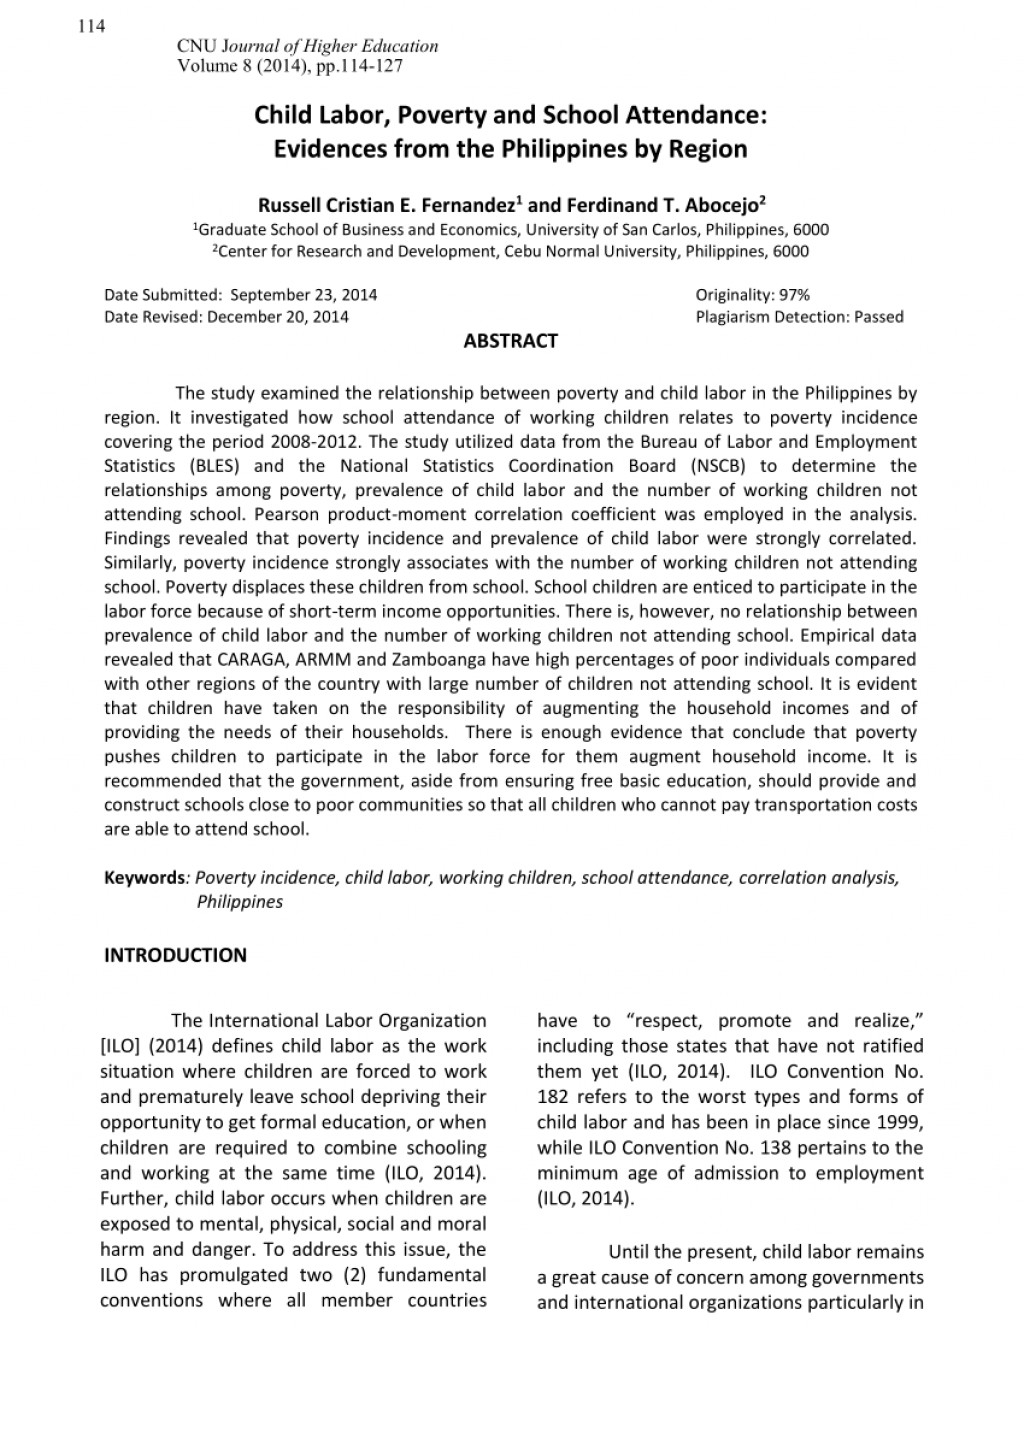 003 Largepreview Poverty In The Philippines Research Paper Remarkable Abstract Large